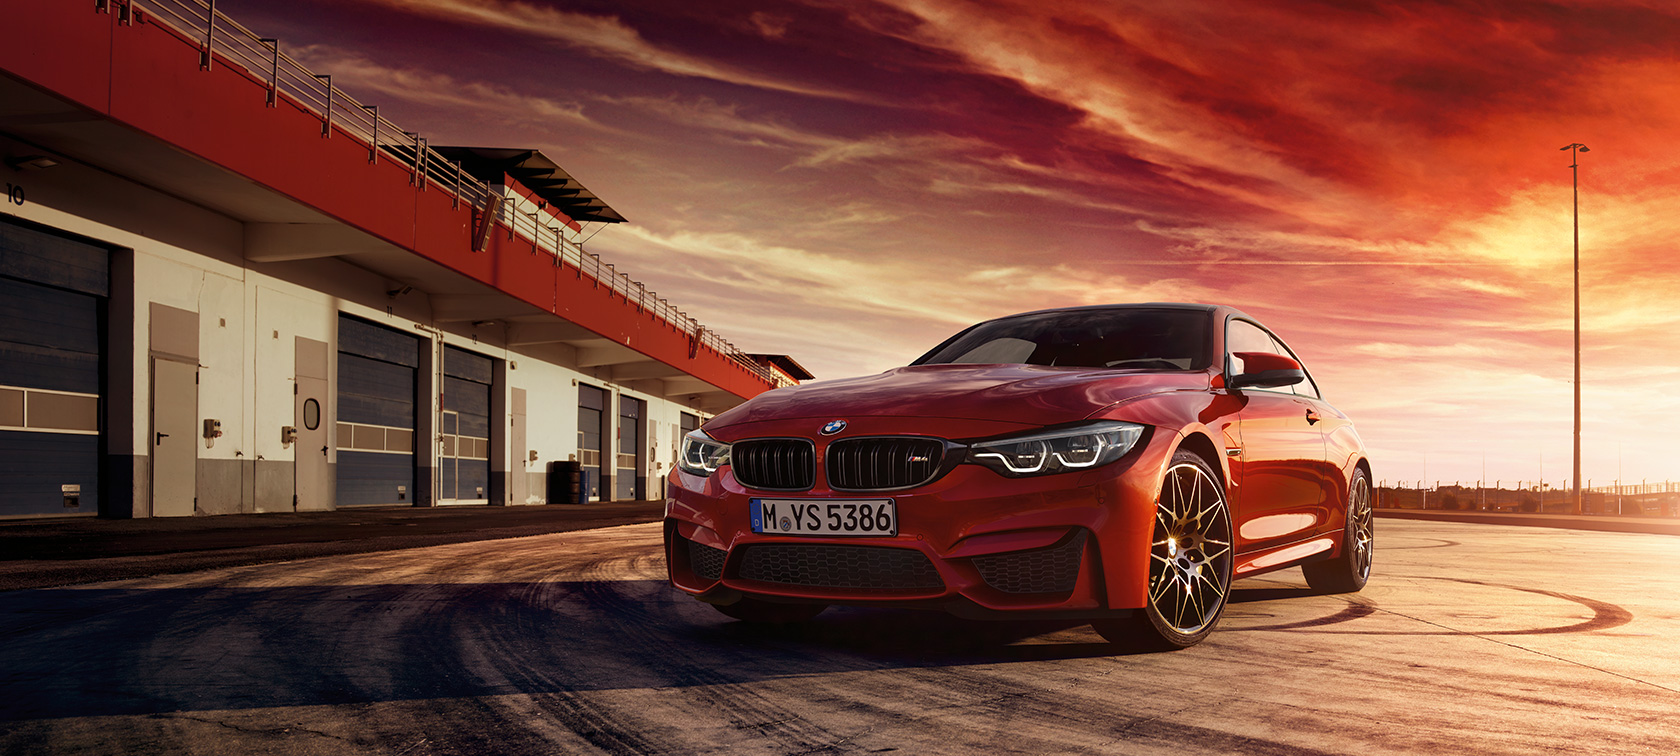 BMW M4 Coupé tekniske data